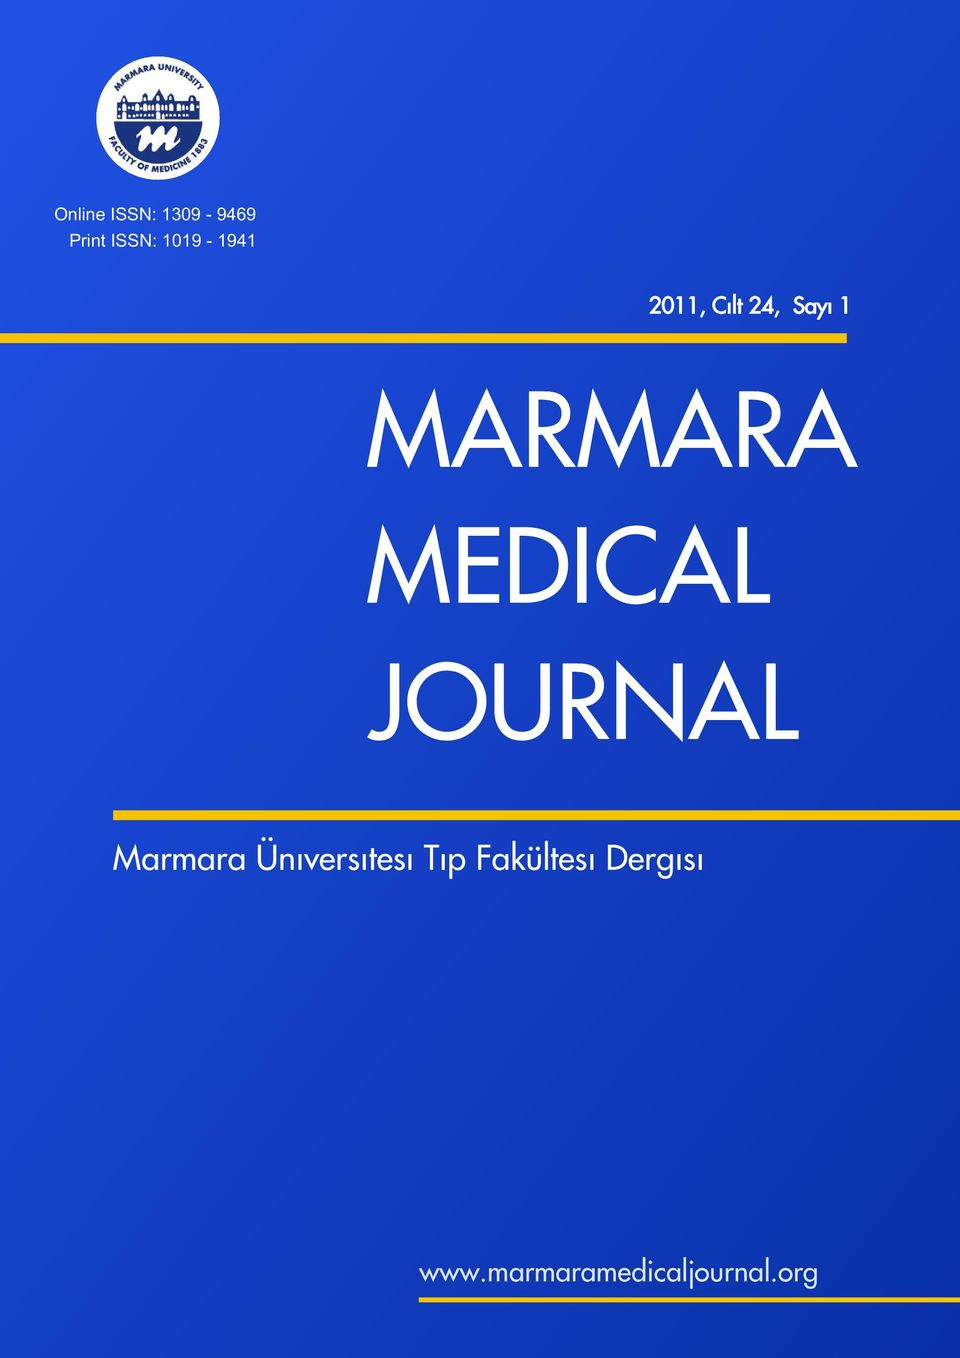 MEDICAL JOURNAL Marmara Üniversitesi Tip